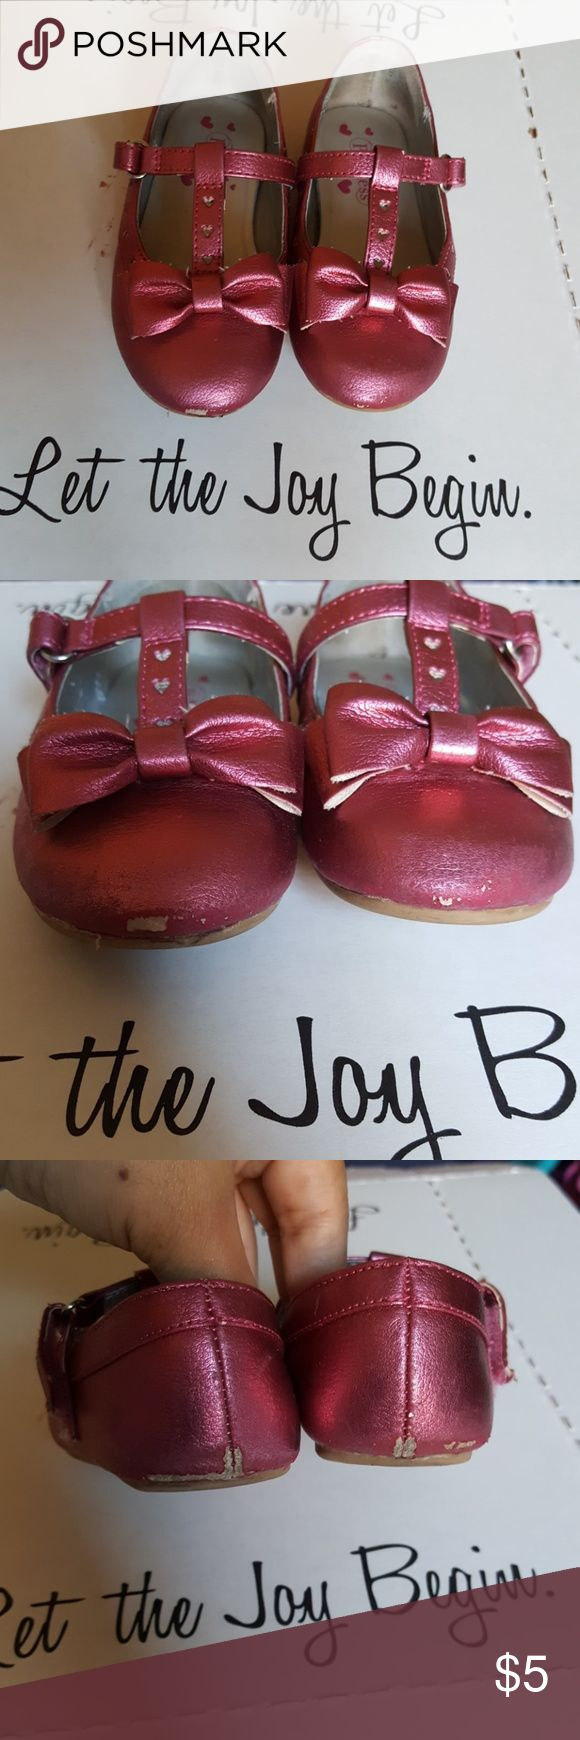 Metallic pink toddler dress shoes This a super cute pair in good used condition. See pic 2 & 3 for scuffs on front and back of shoe. Great Disney shoes to dress up or down! Bundle and save! Disney Shoes Dress Shoes